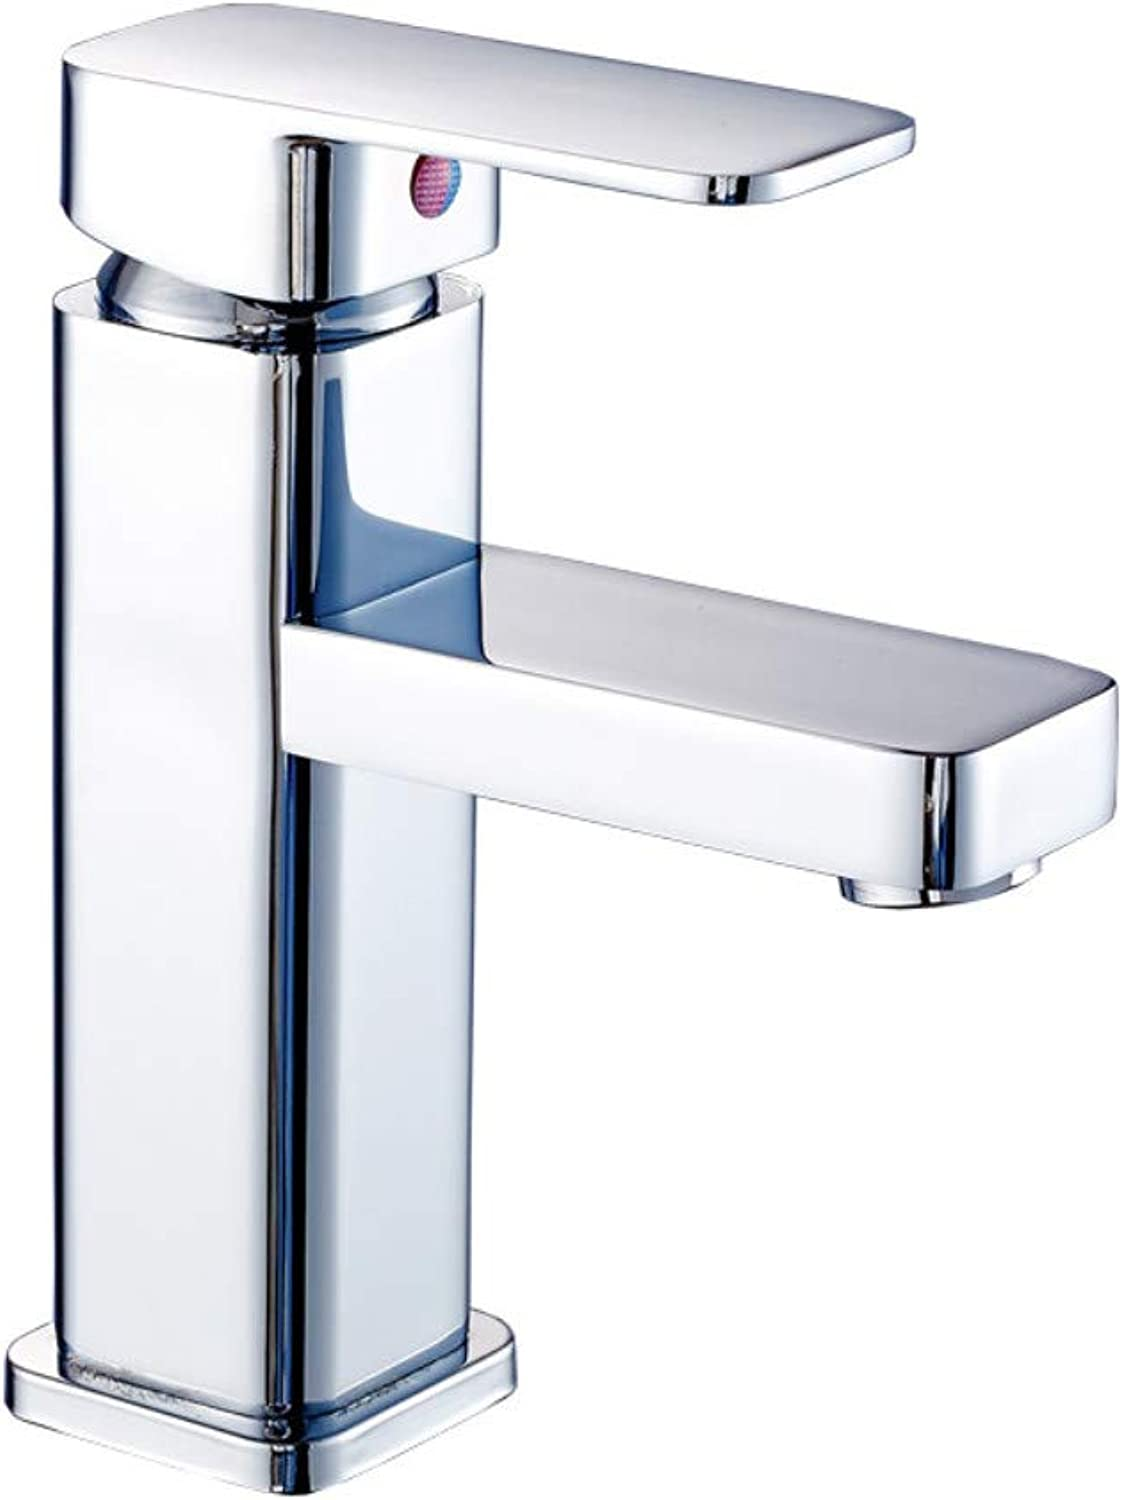 Bathroom, Washbasin, Pool, Cold and Hot Water Faucet, Basin, Washbasin, All-Copper Single-Hole Bathroom Cabinet, Toilet and Toilet